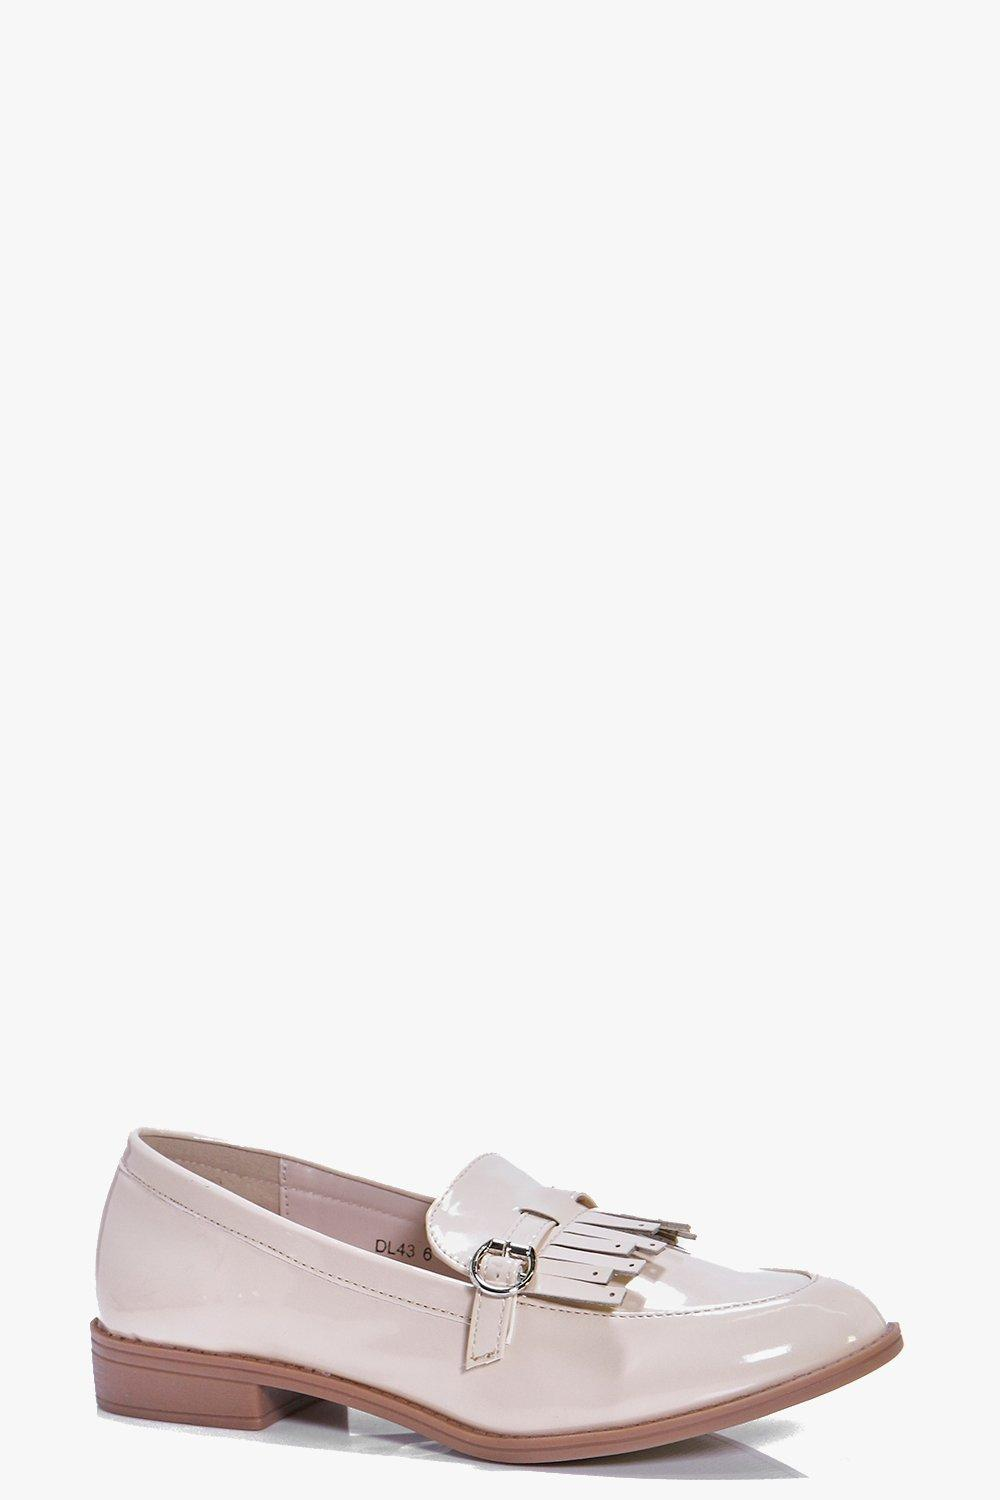 Rosie Buckle Fringe Front Loafer